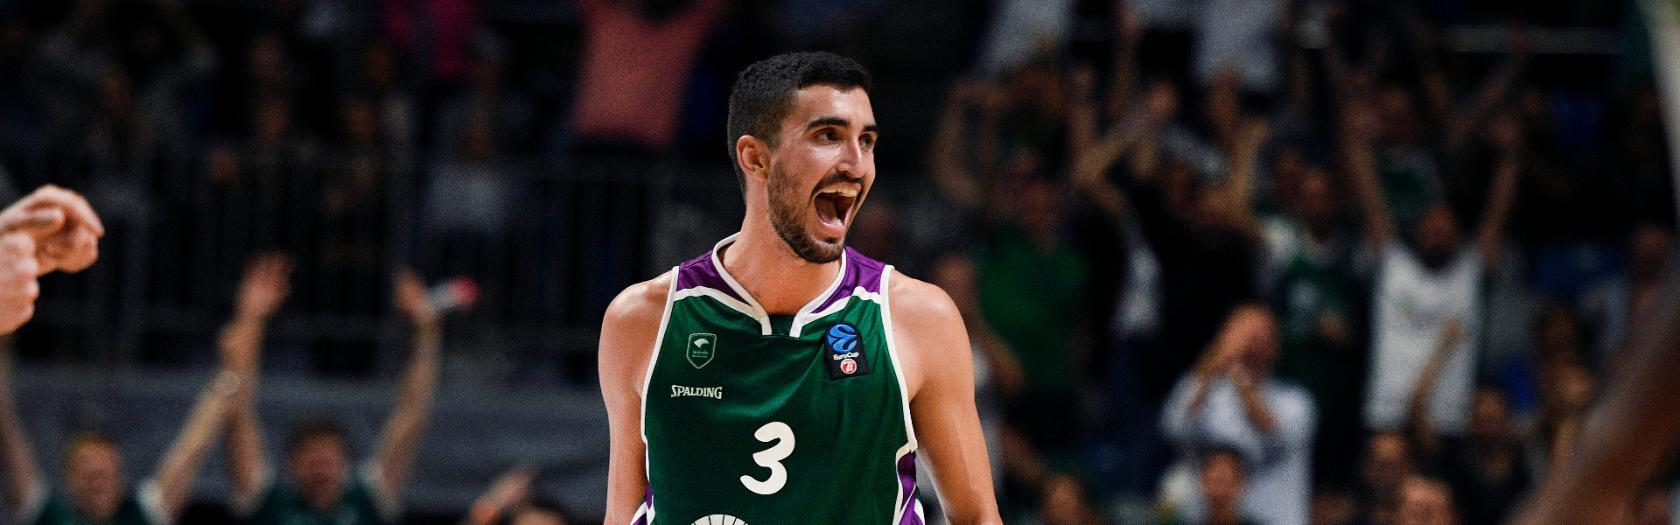 Jaime Fernández and Brian Roberts rescue Unicaja to defeat UNICS Kazan  (82-80)